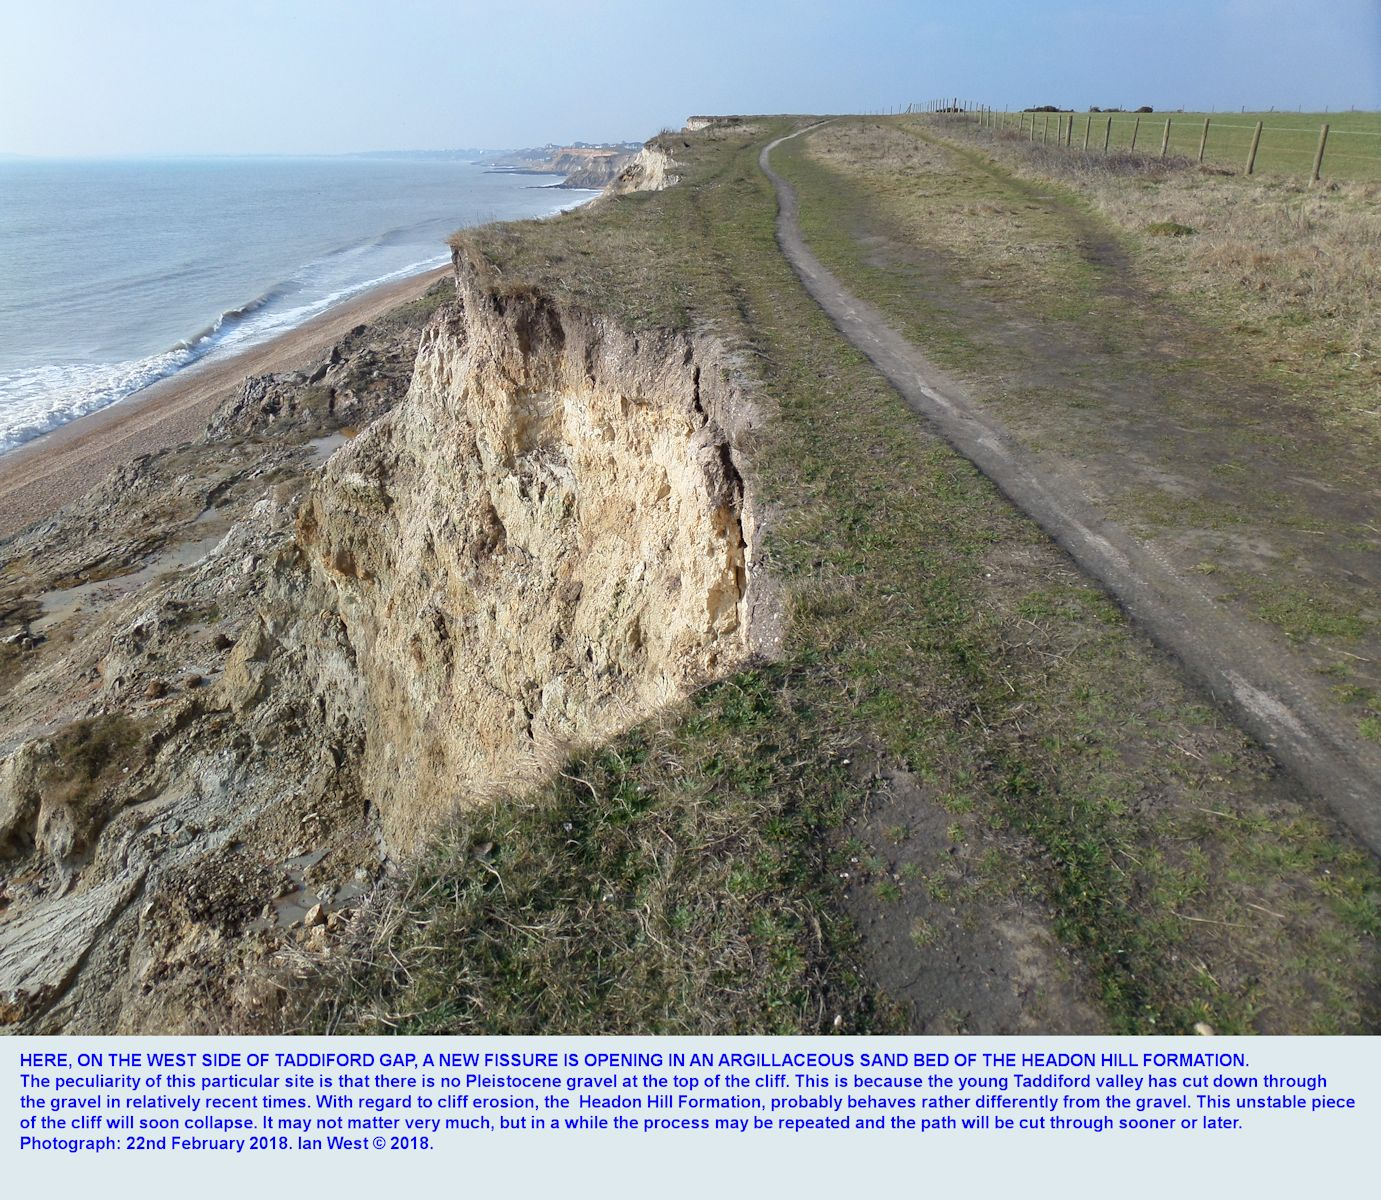 At the top of a landslide and mudslide, a new fissure in the Headon Hill Formation at the top of the cliff, just west of Taddiford Gap, Hordle Cliff, Hampshire, at a place where there is no Pleistocene gravel, 22nd February, 2018